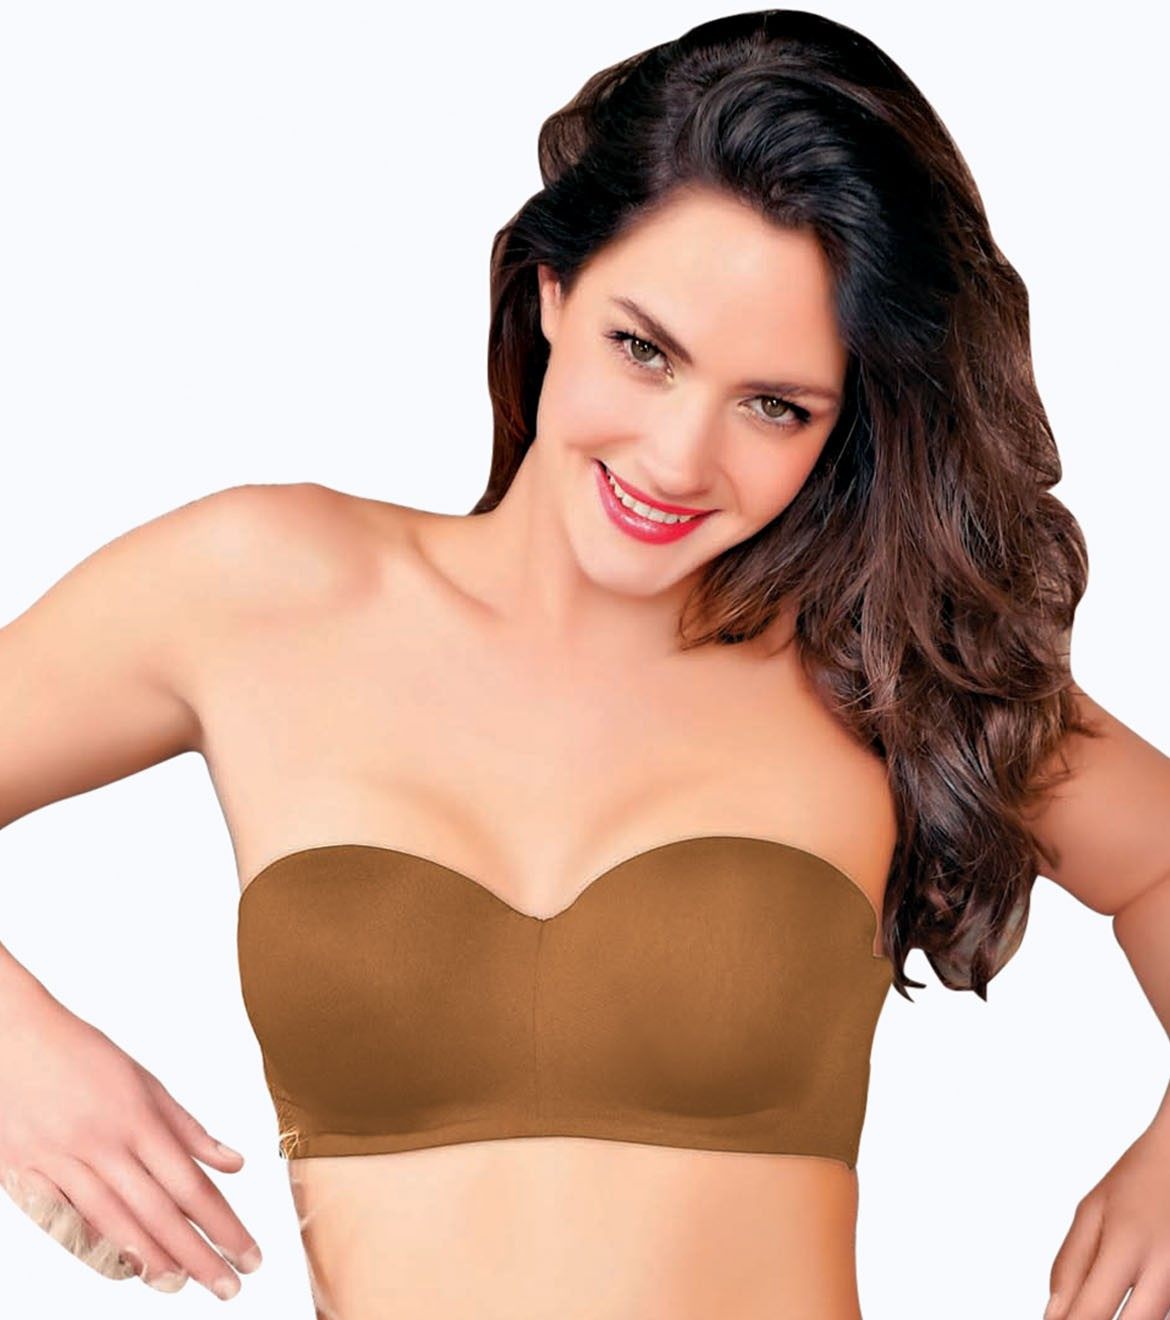 Enamor Women F074 Full Figure Strapless & Multi-Way Bra (32C, BUFF)